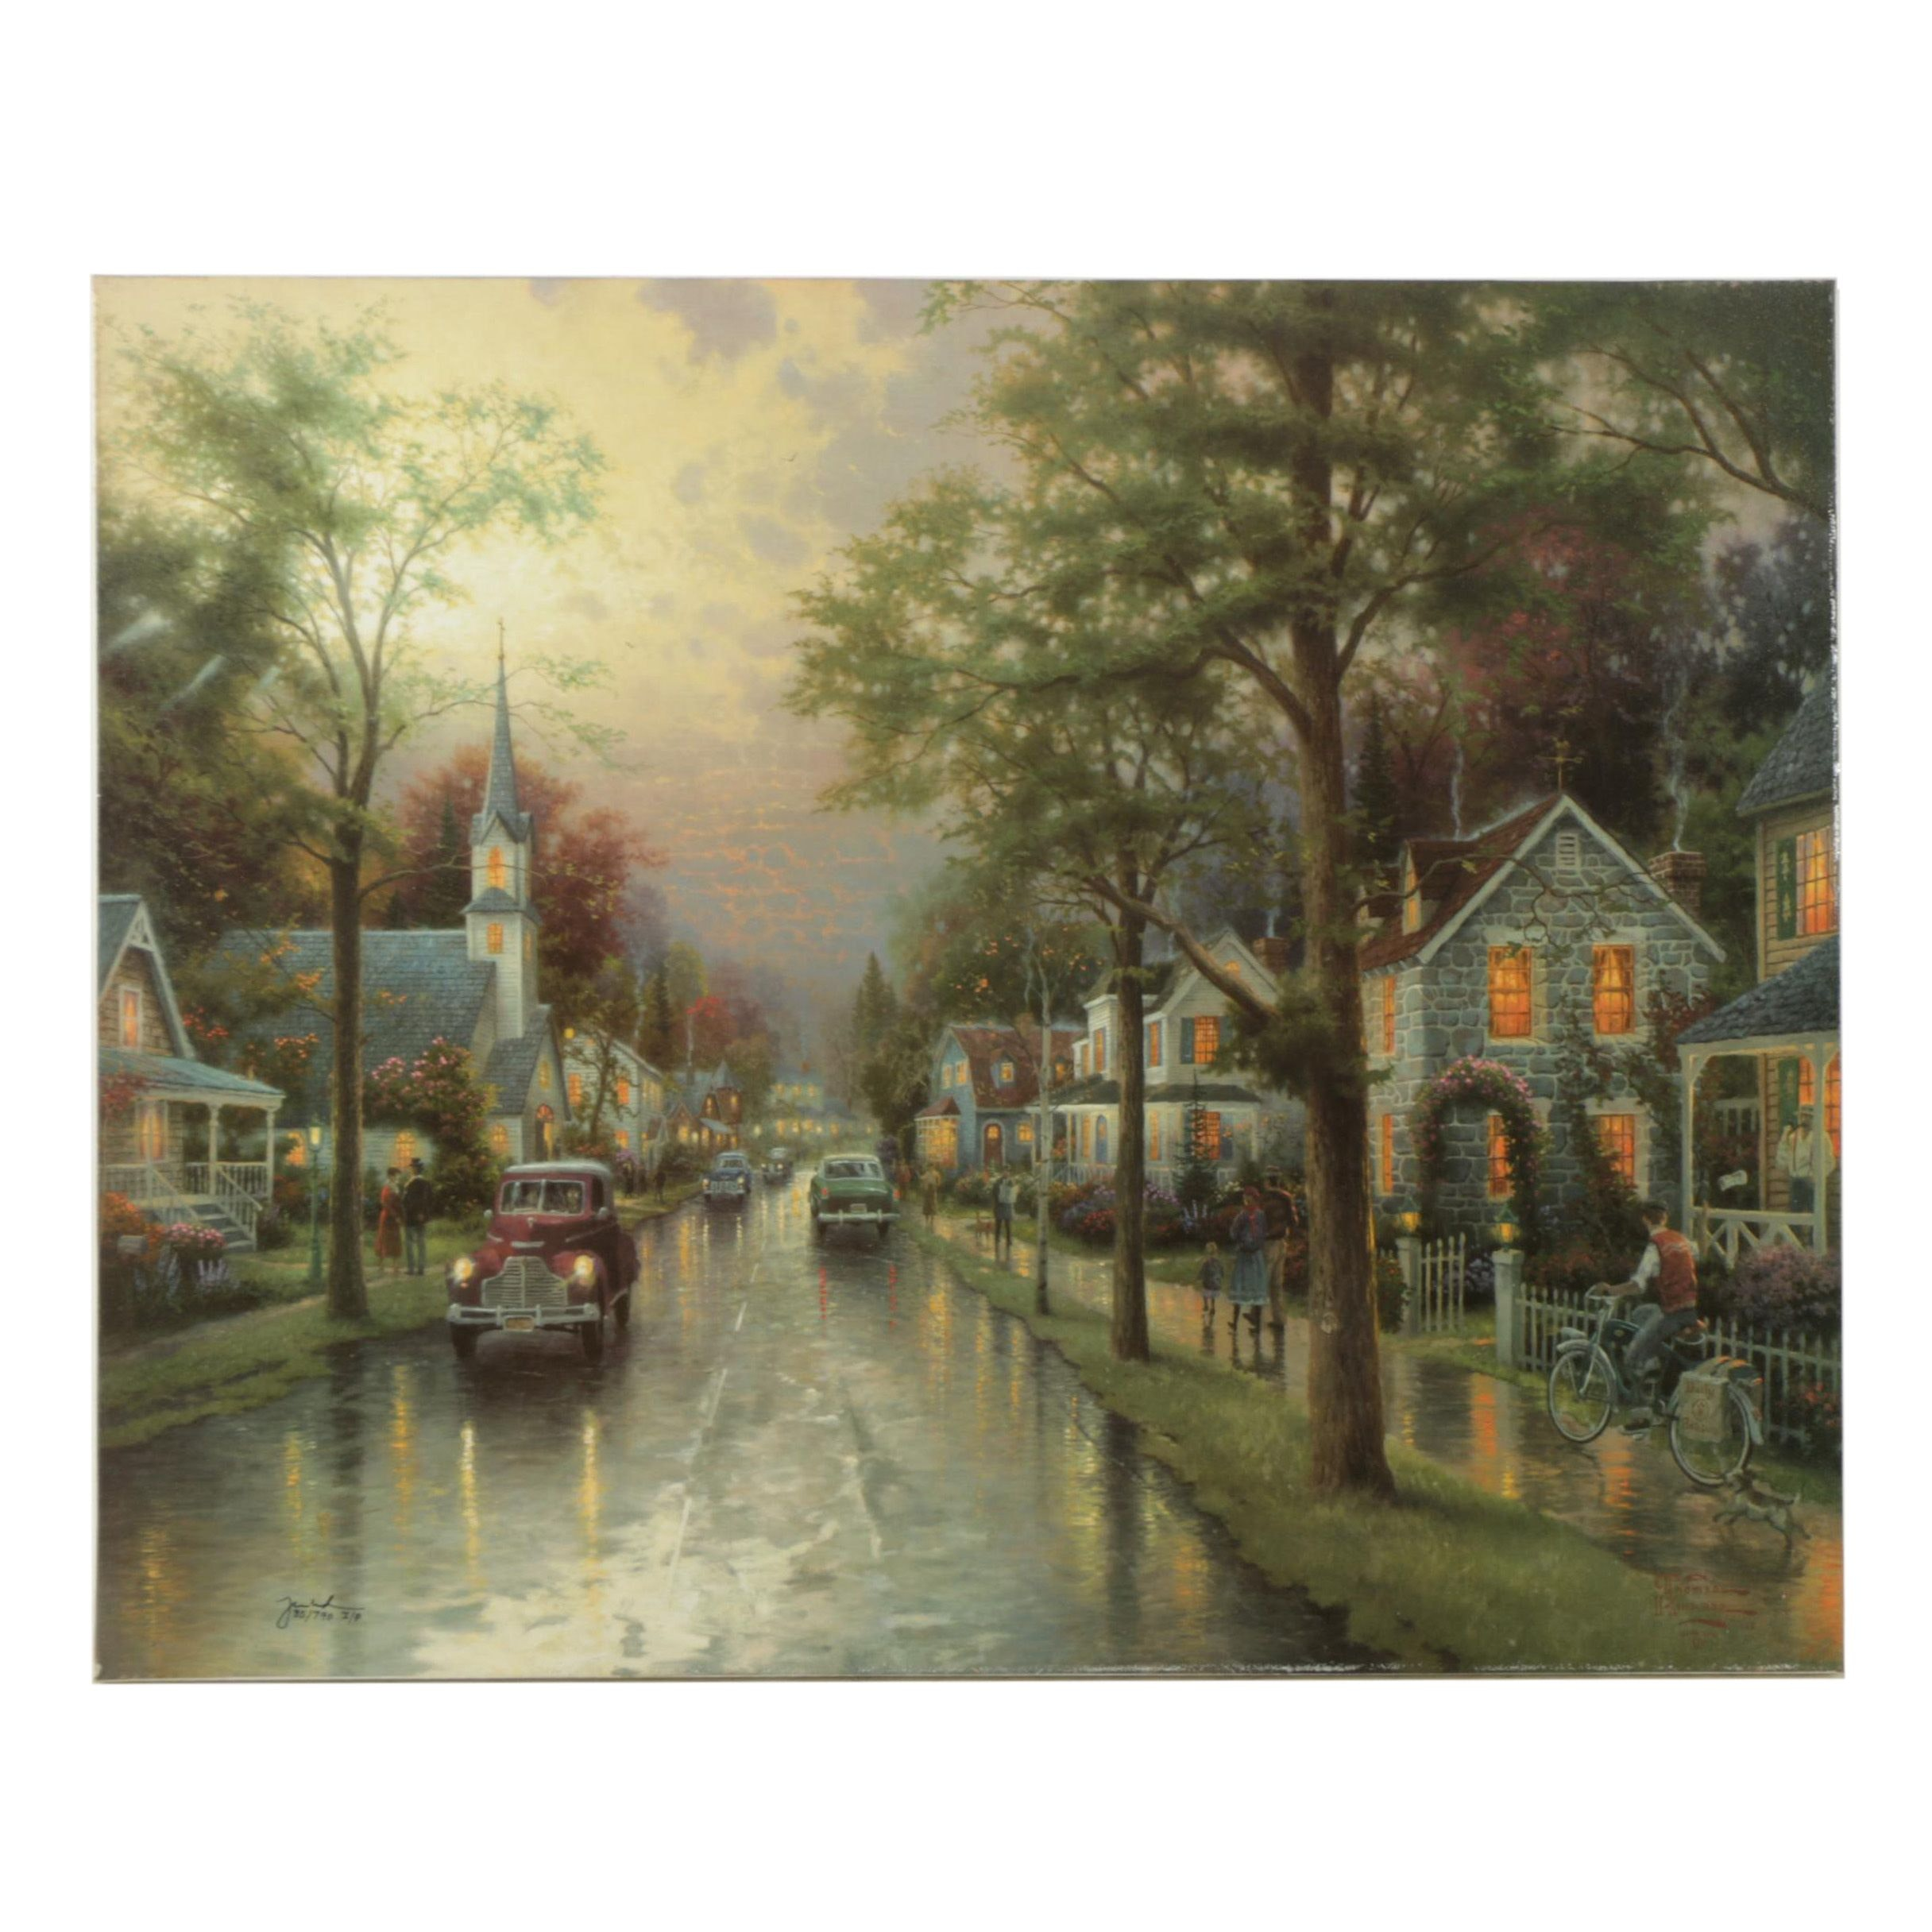 """Thomas Kinkade Limited Edition Offset Lithograph on Canvas """"Hometown Morning"""""""